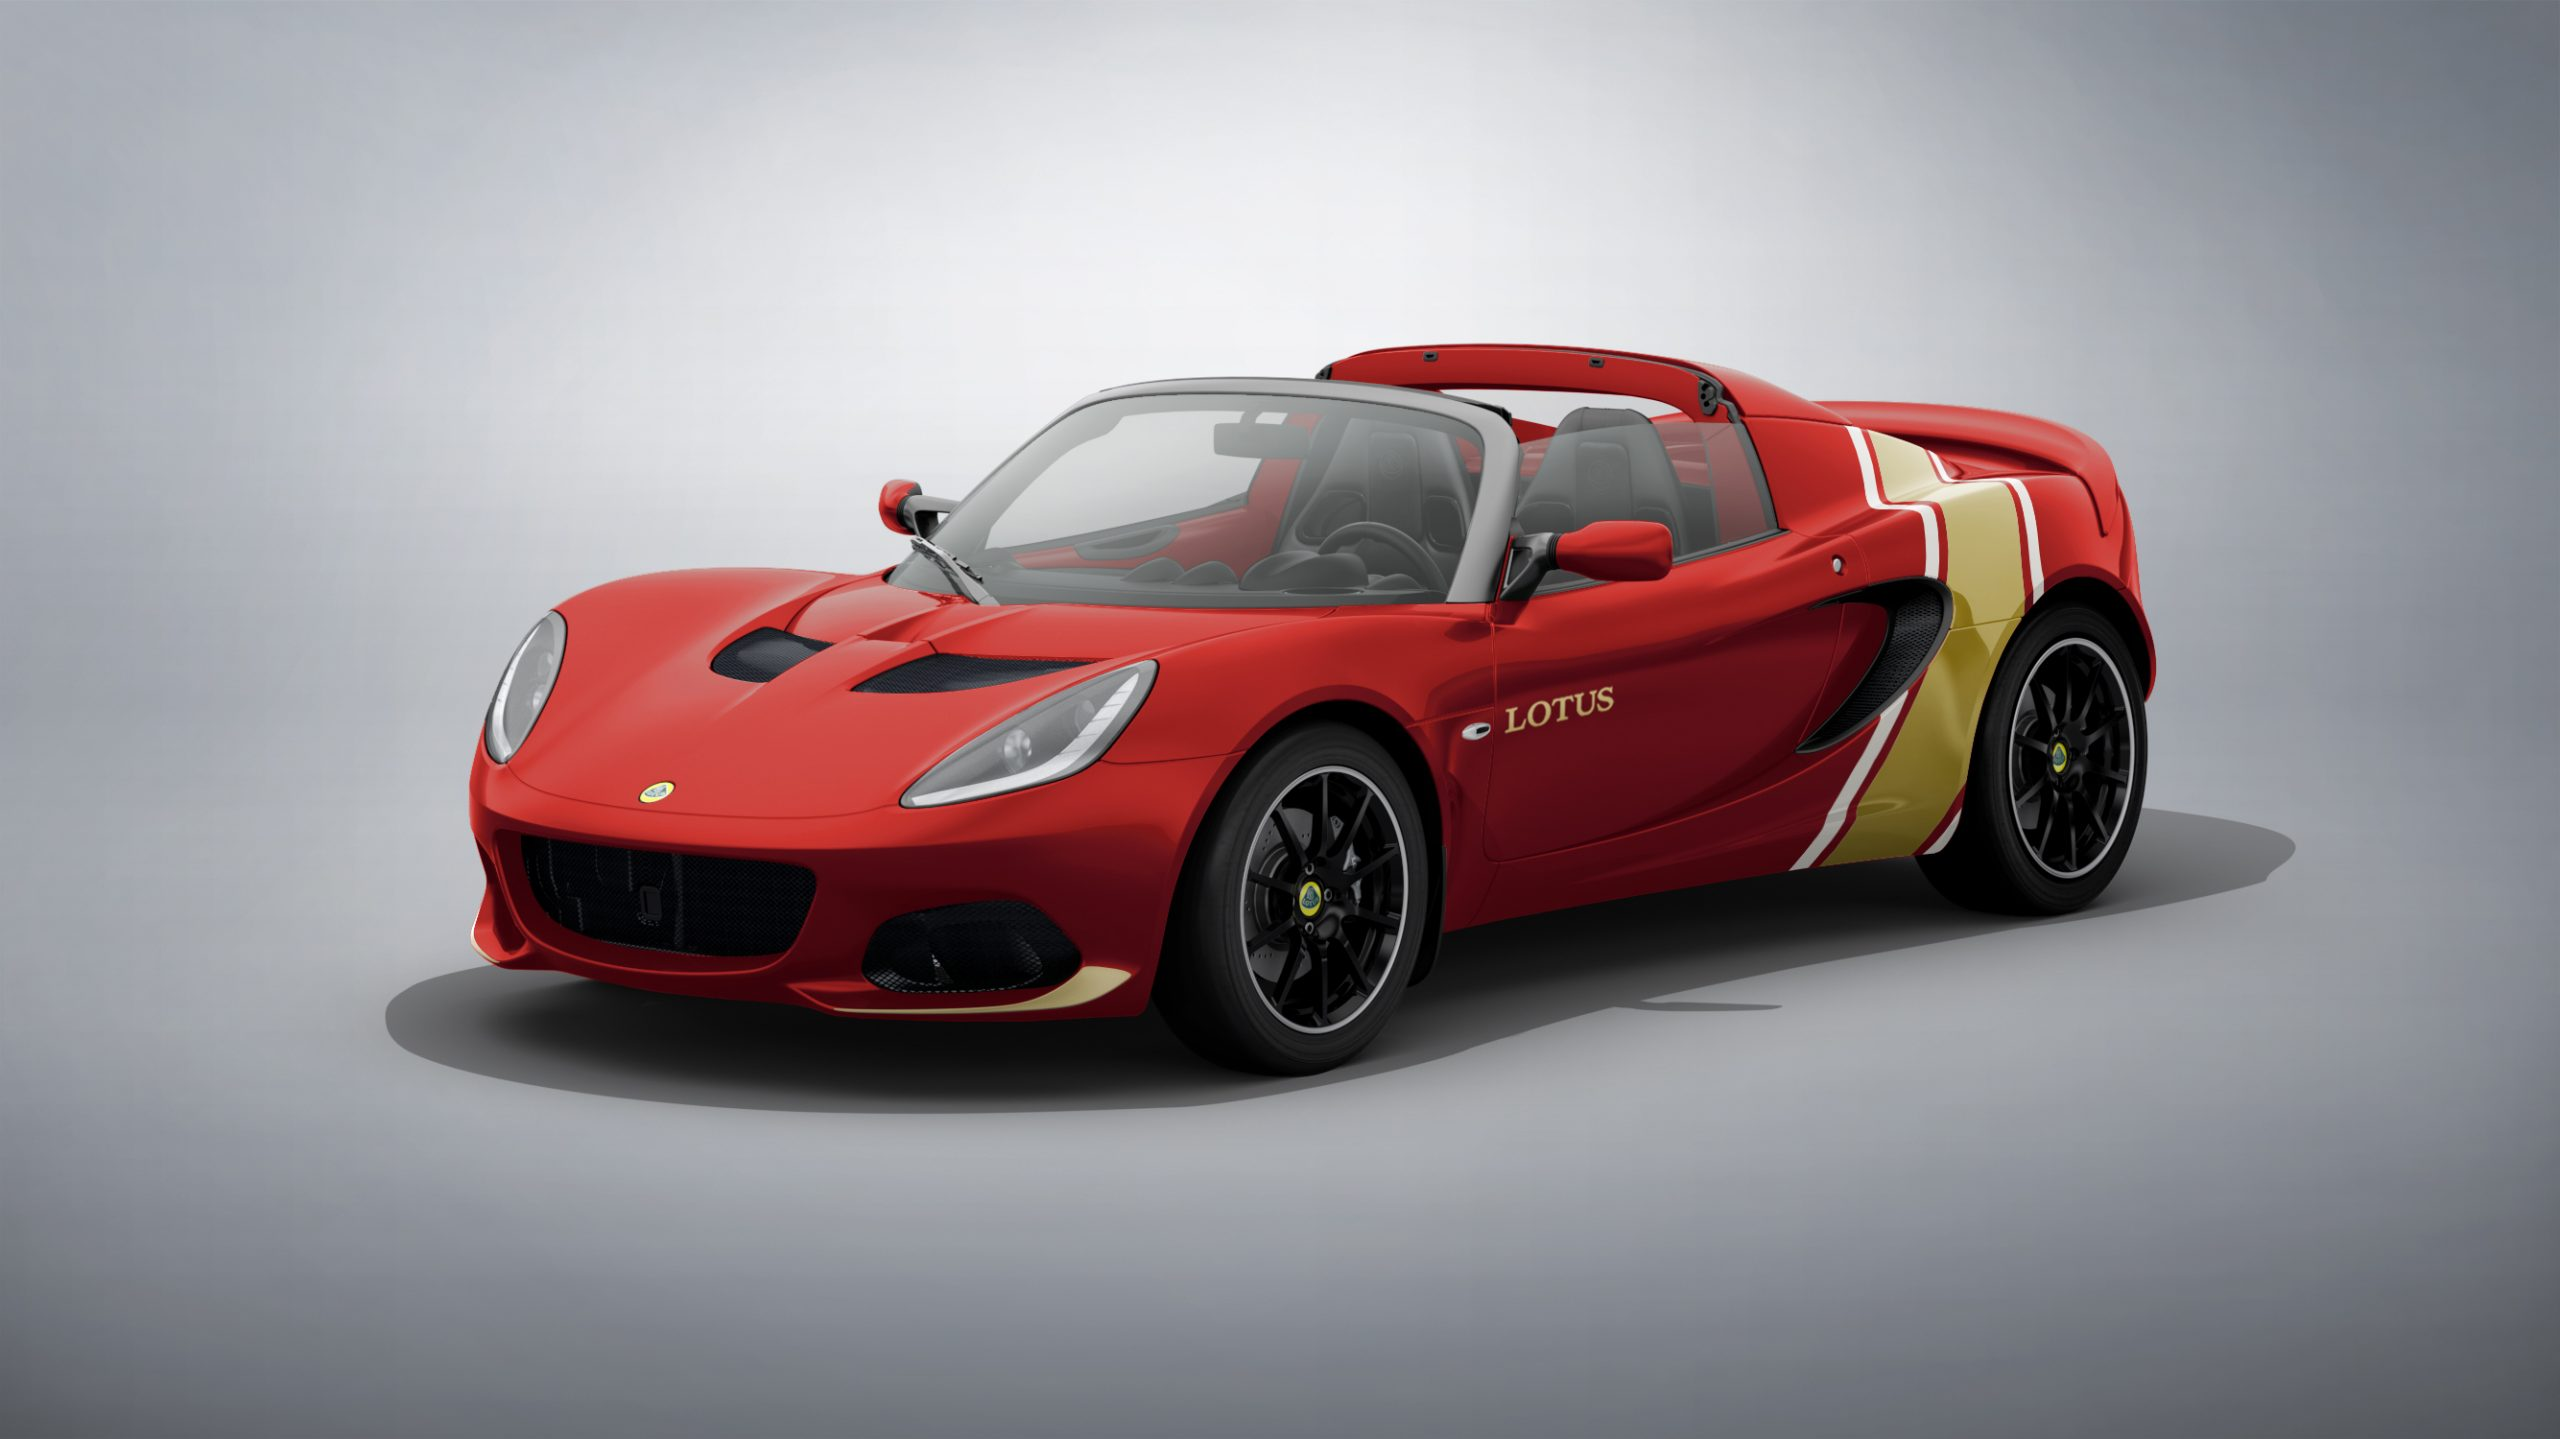 Lotus launches classic racing liveries with Elise Heritage Editions